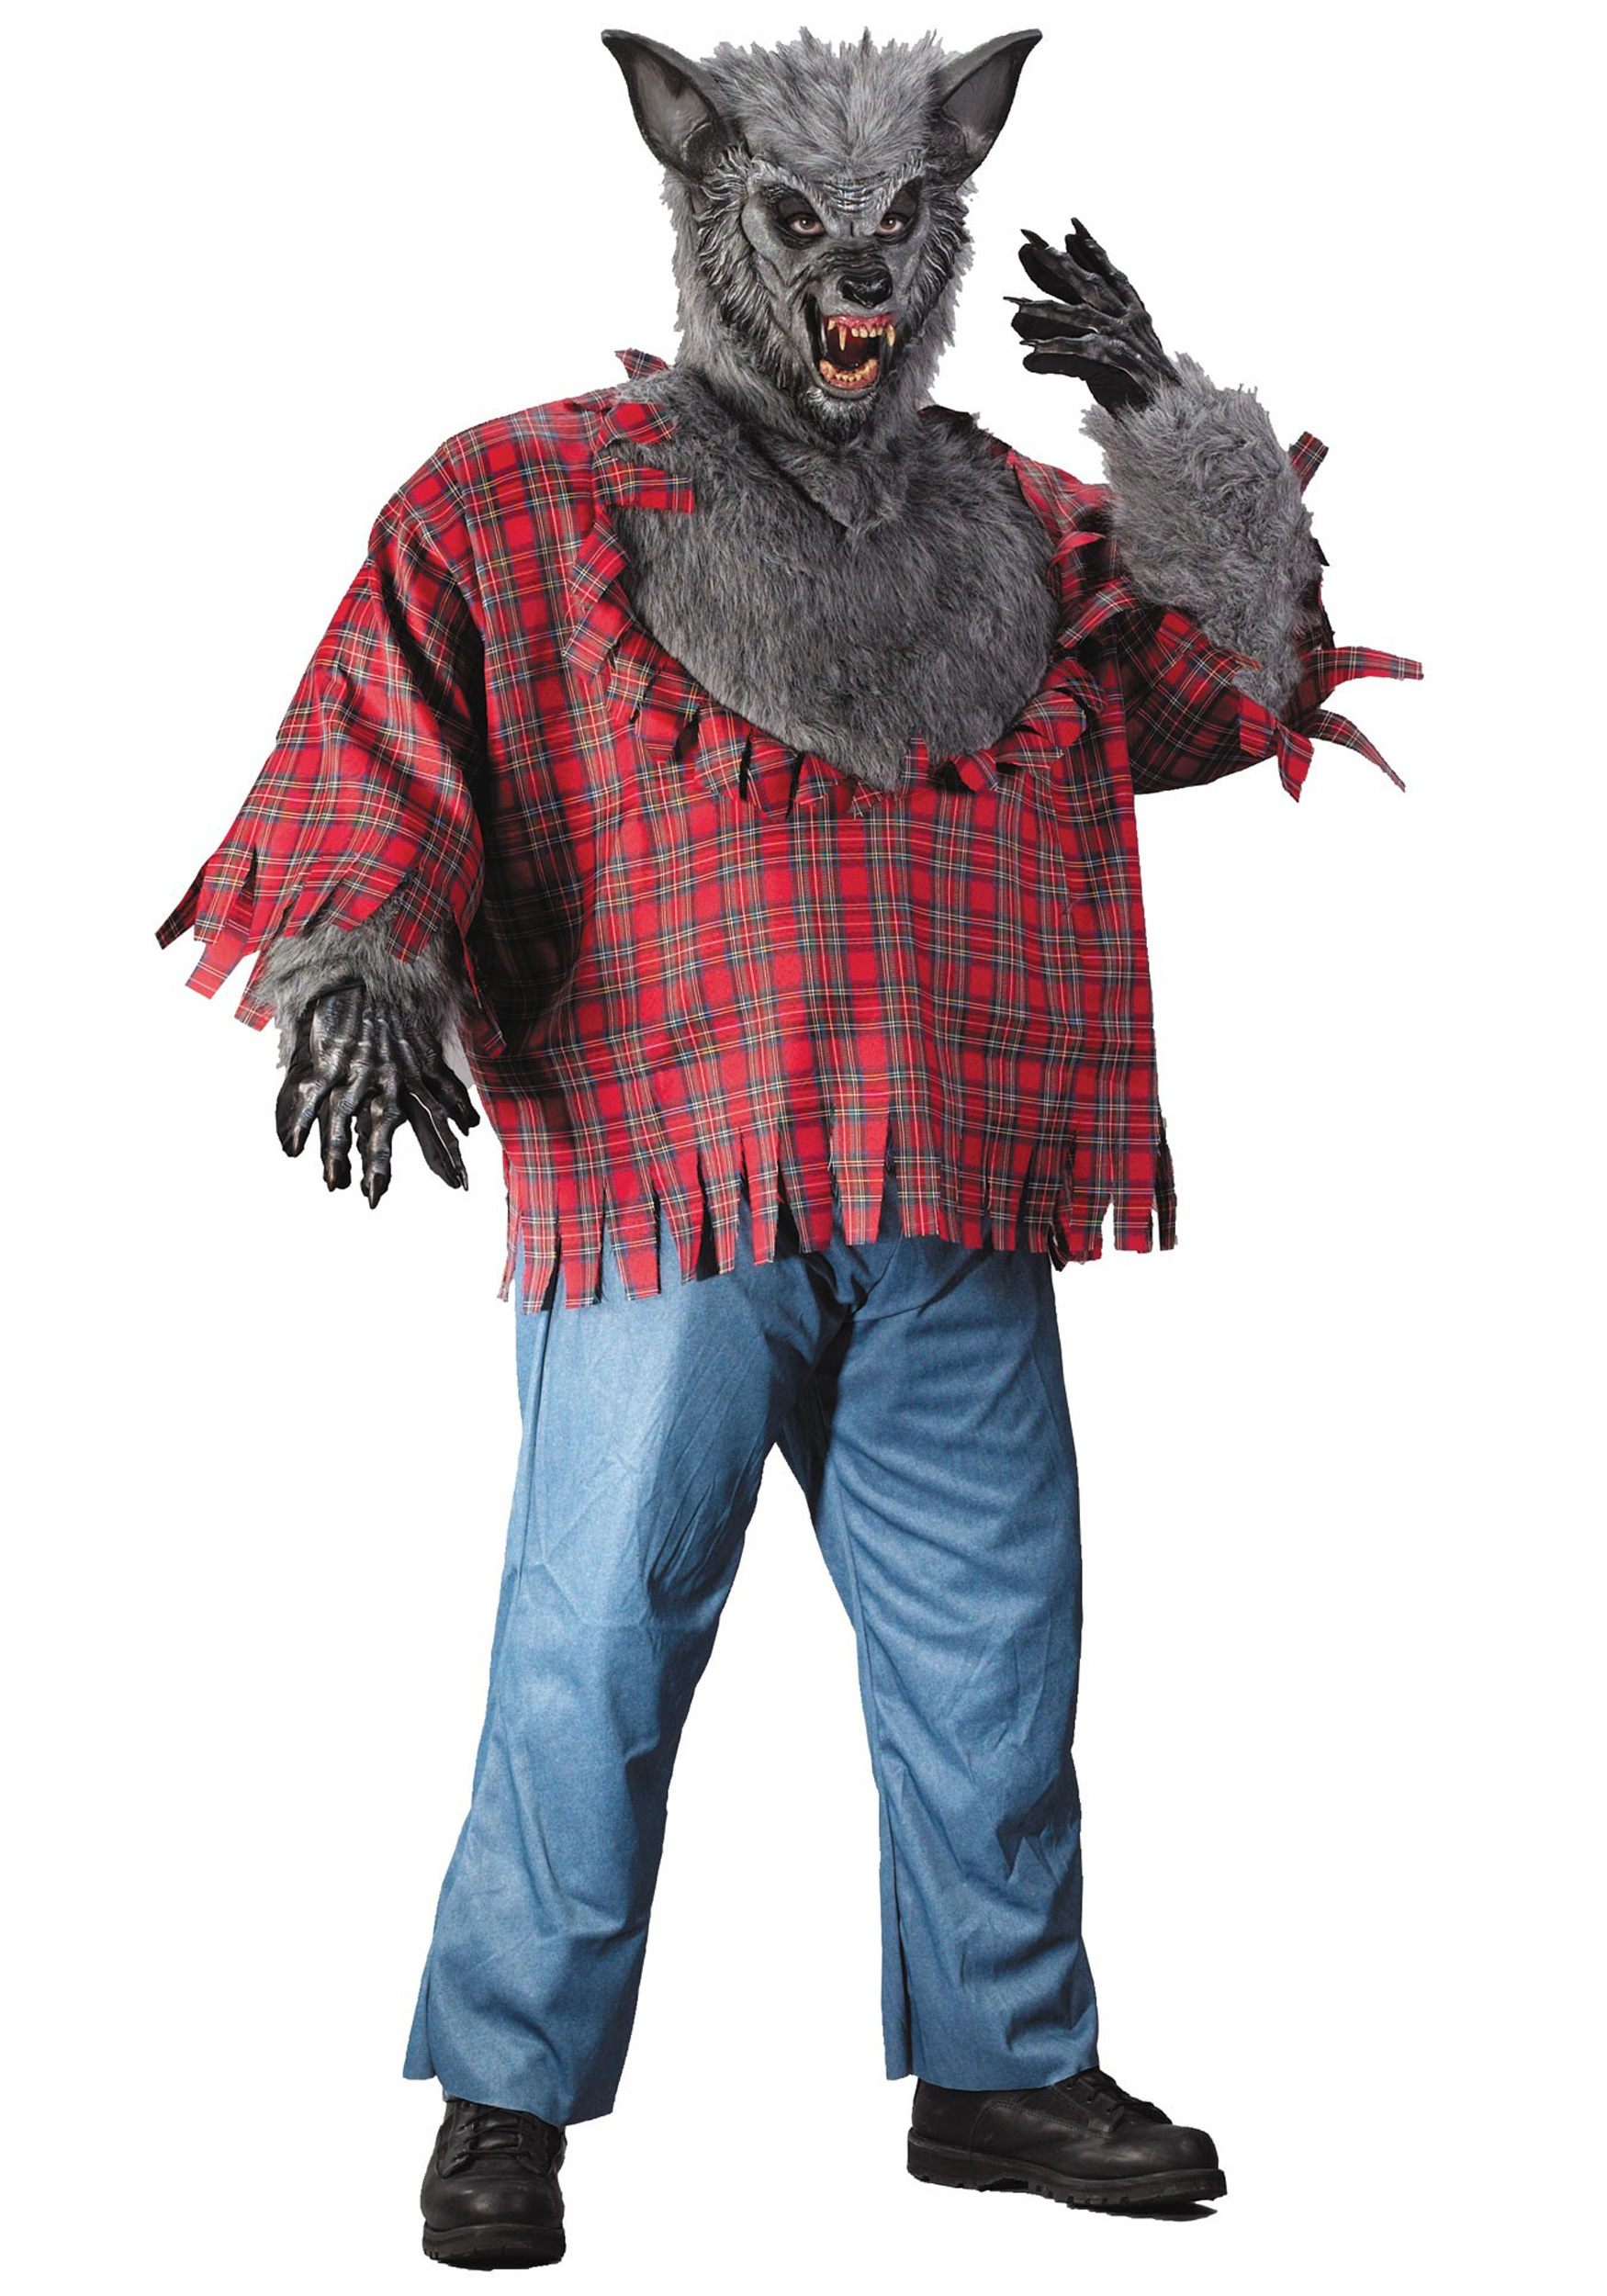 Gray plus size werewolf costume 1x gray plus size werewolf costume solutioingenieria Choice Image